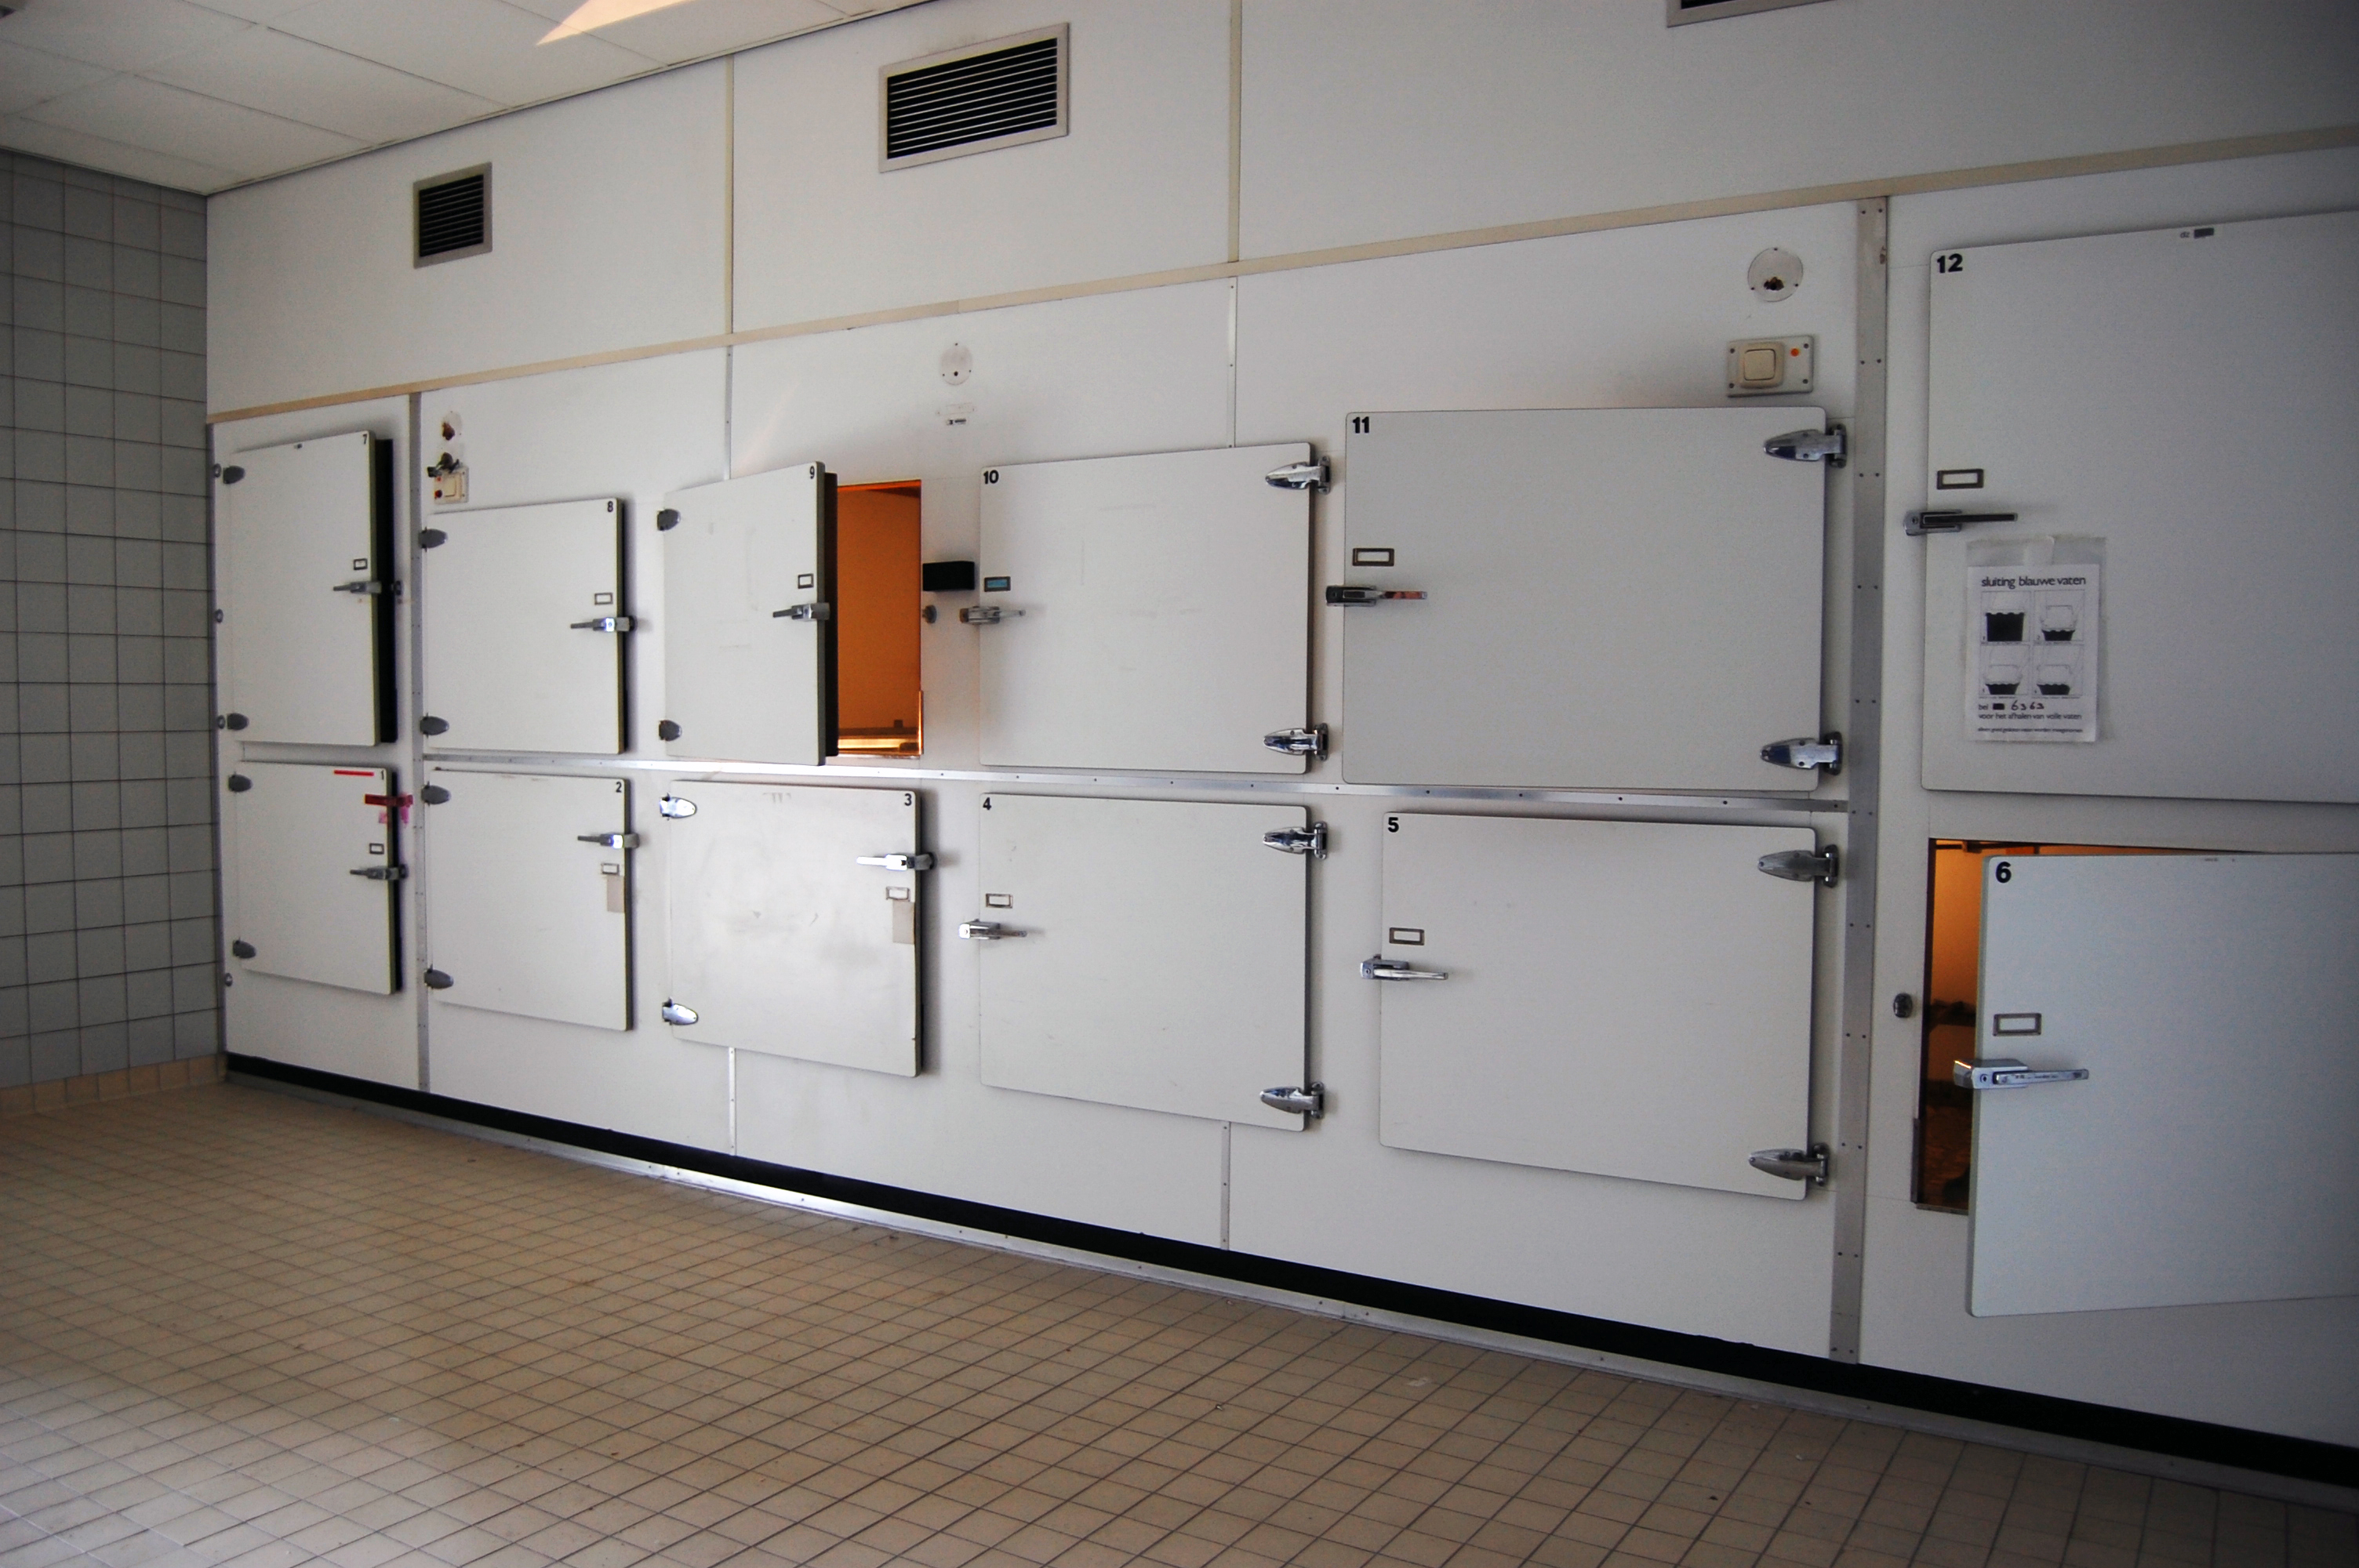 Morgue - Wikipedia